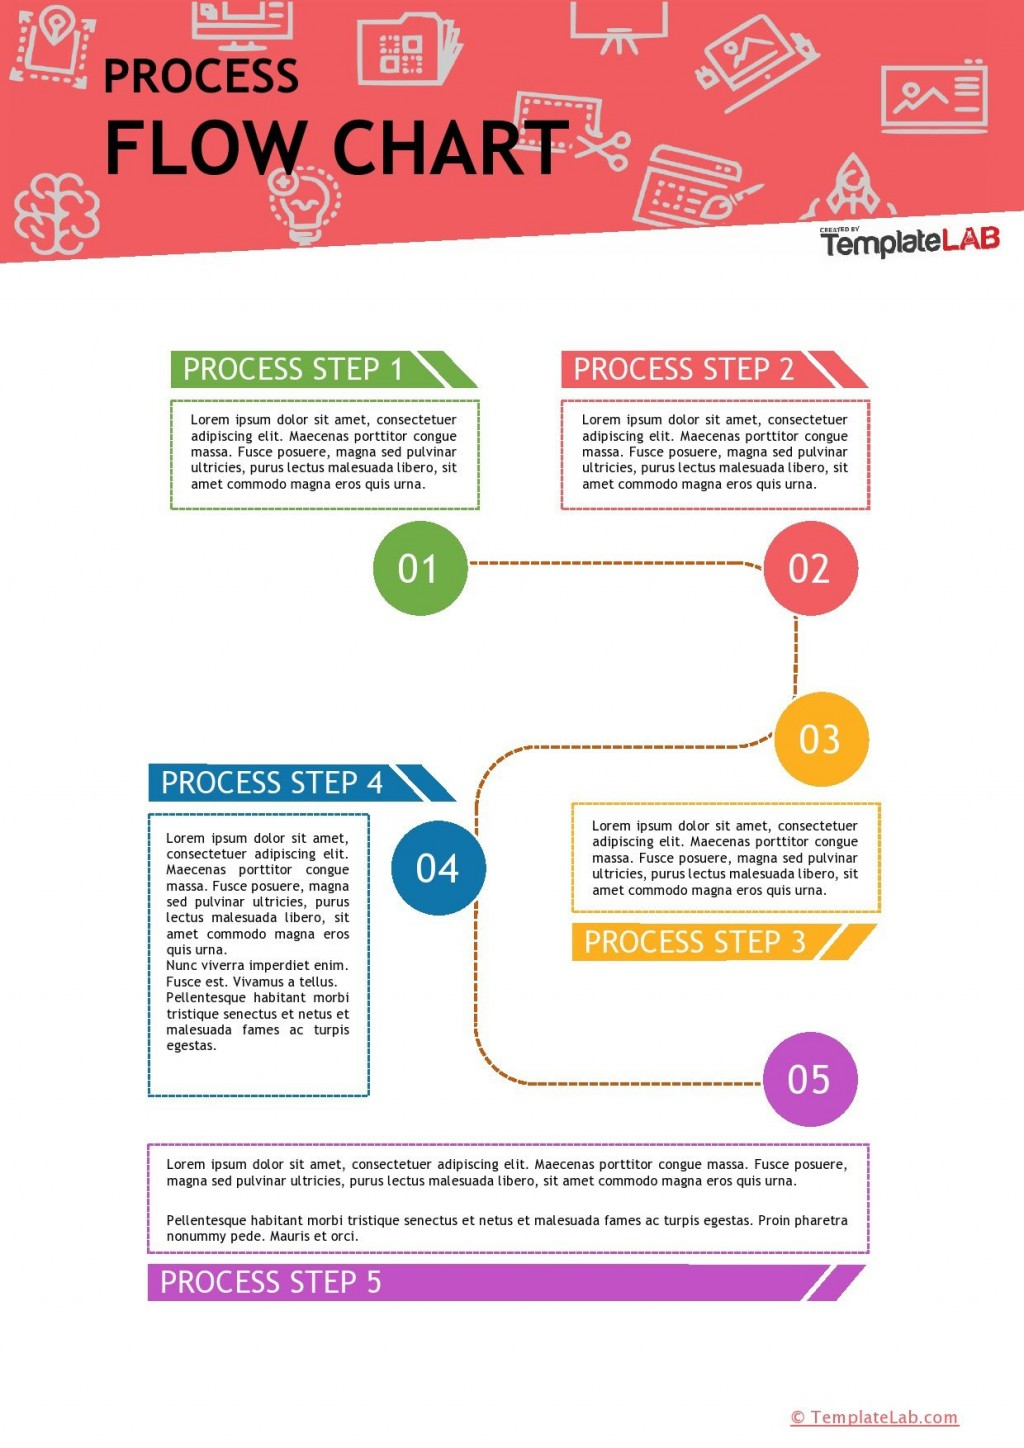 009 Wondrou Flow Chart Template Excel Free Photo  Blank For DownloadLarge